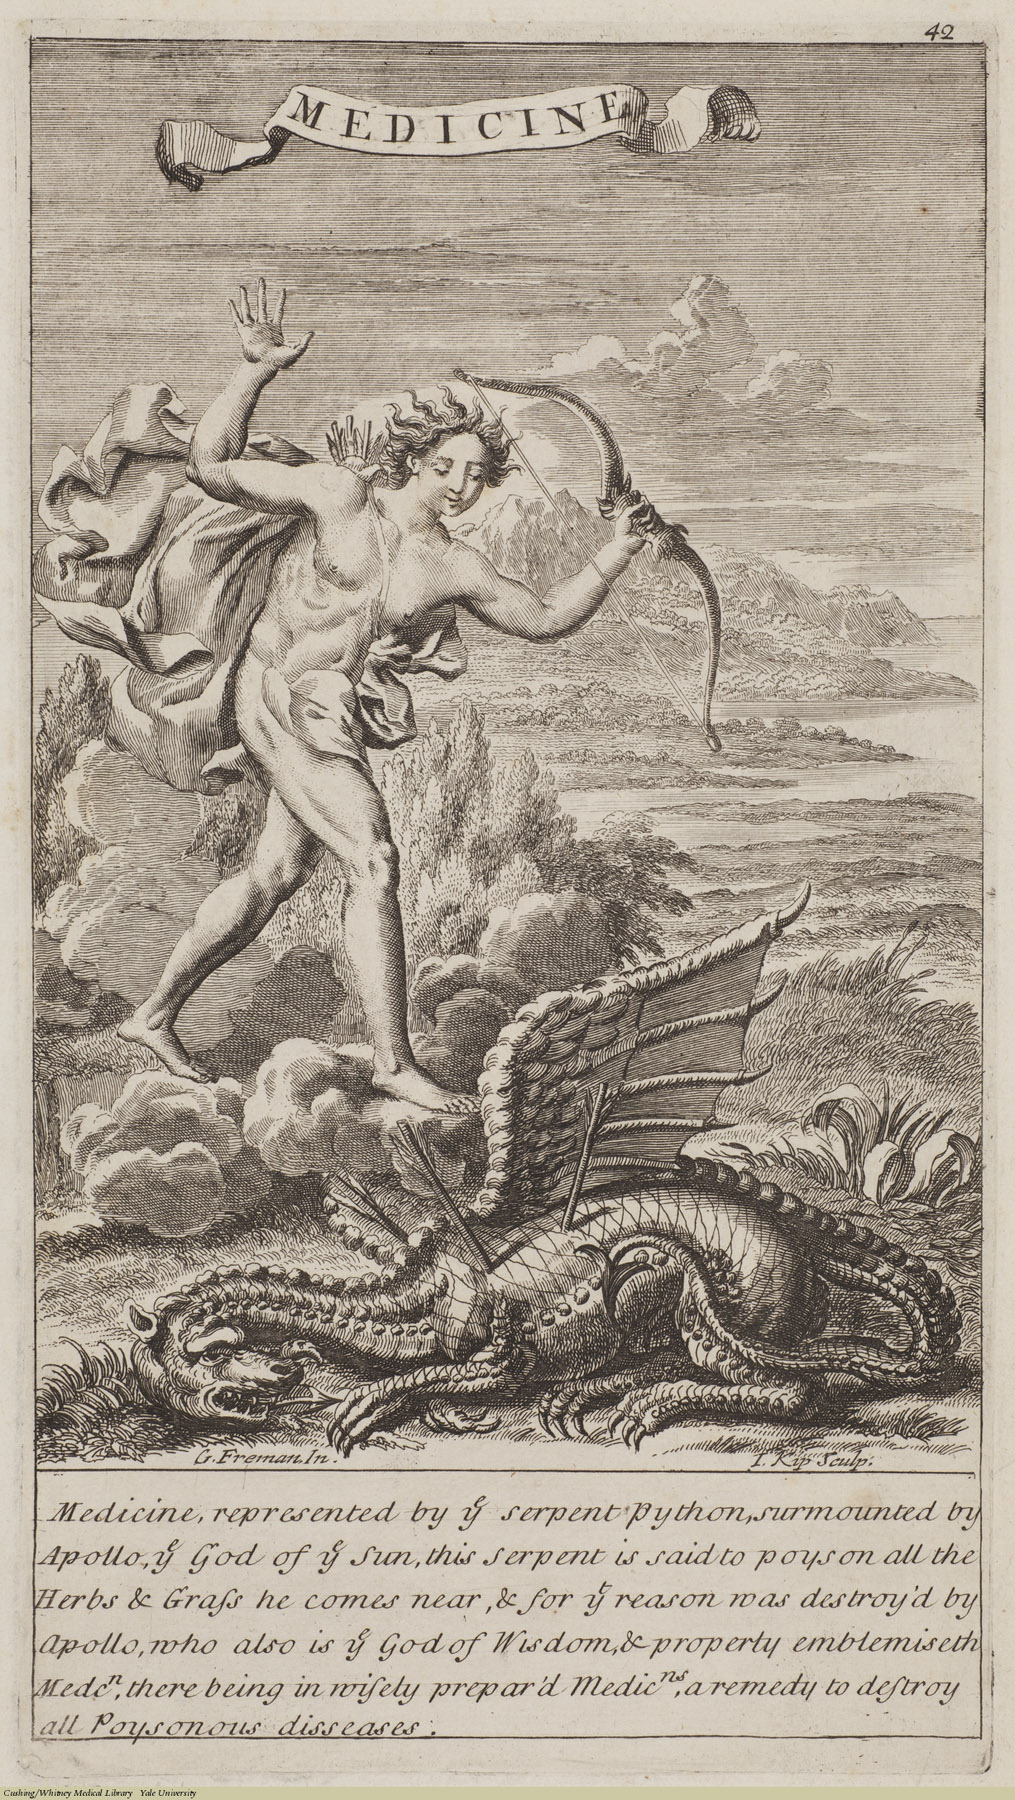 Medicine. Jan Kip (1652-1722), Laid. Subject: Apollo, Python, Mythology, Drugs.